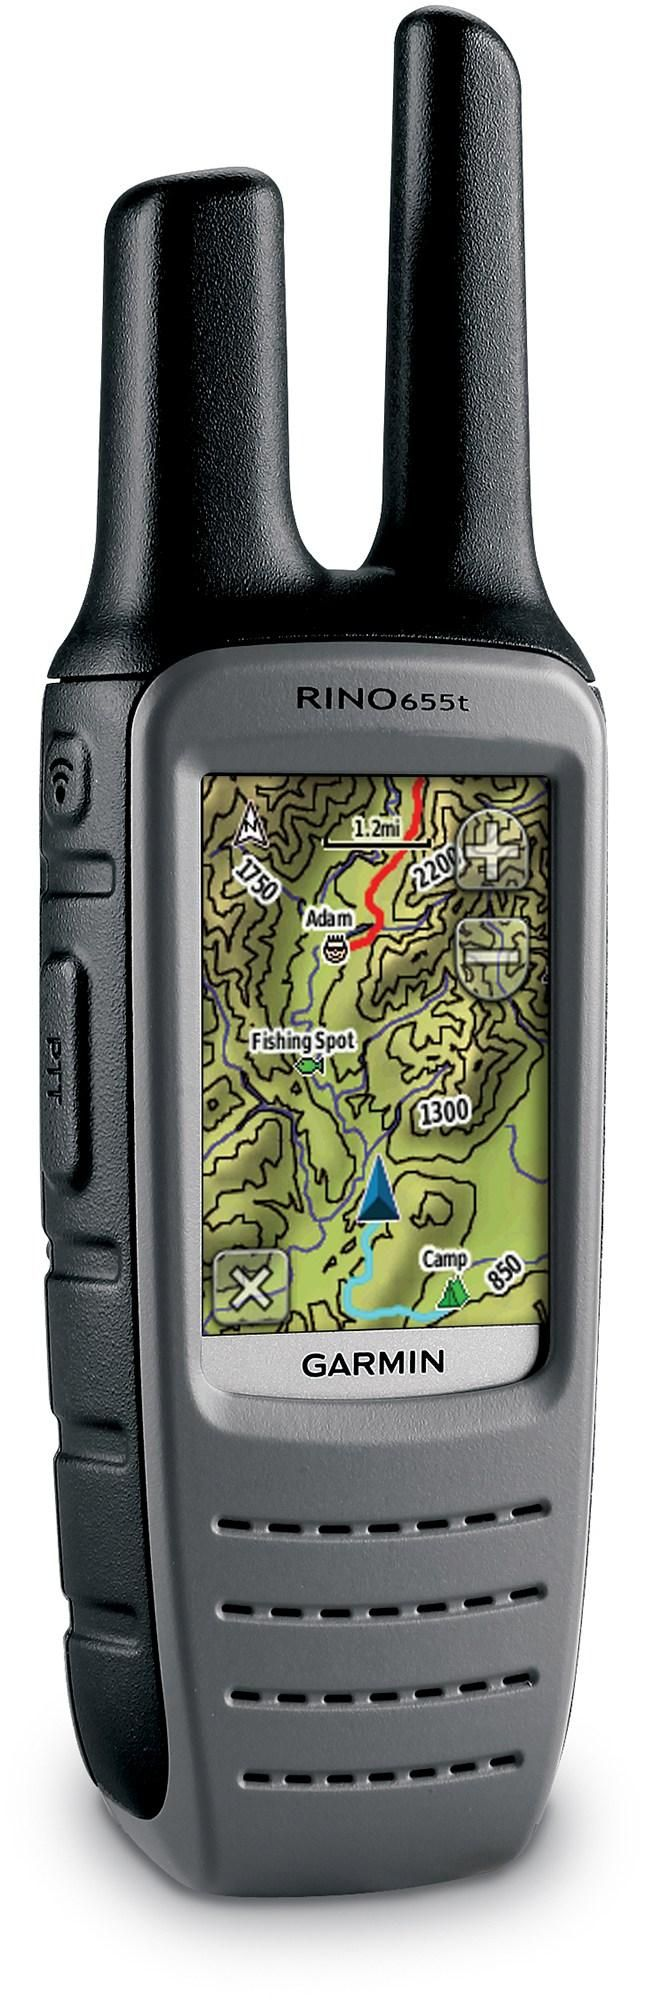 GPS with TOPO maps, FRS/GMRS radio, altimeter, compass, weather radio and digital camera in 1 device! Garmin Rino 655t GPS/2-Way Radio. #REIGifts